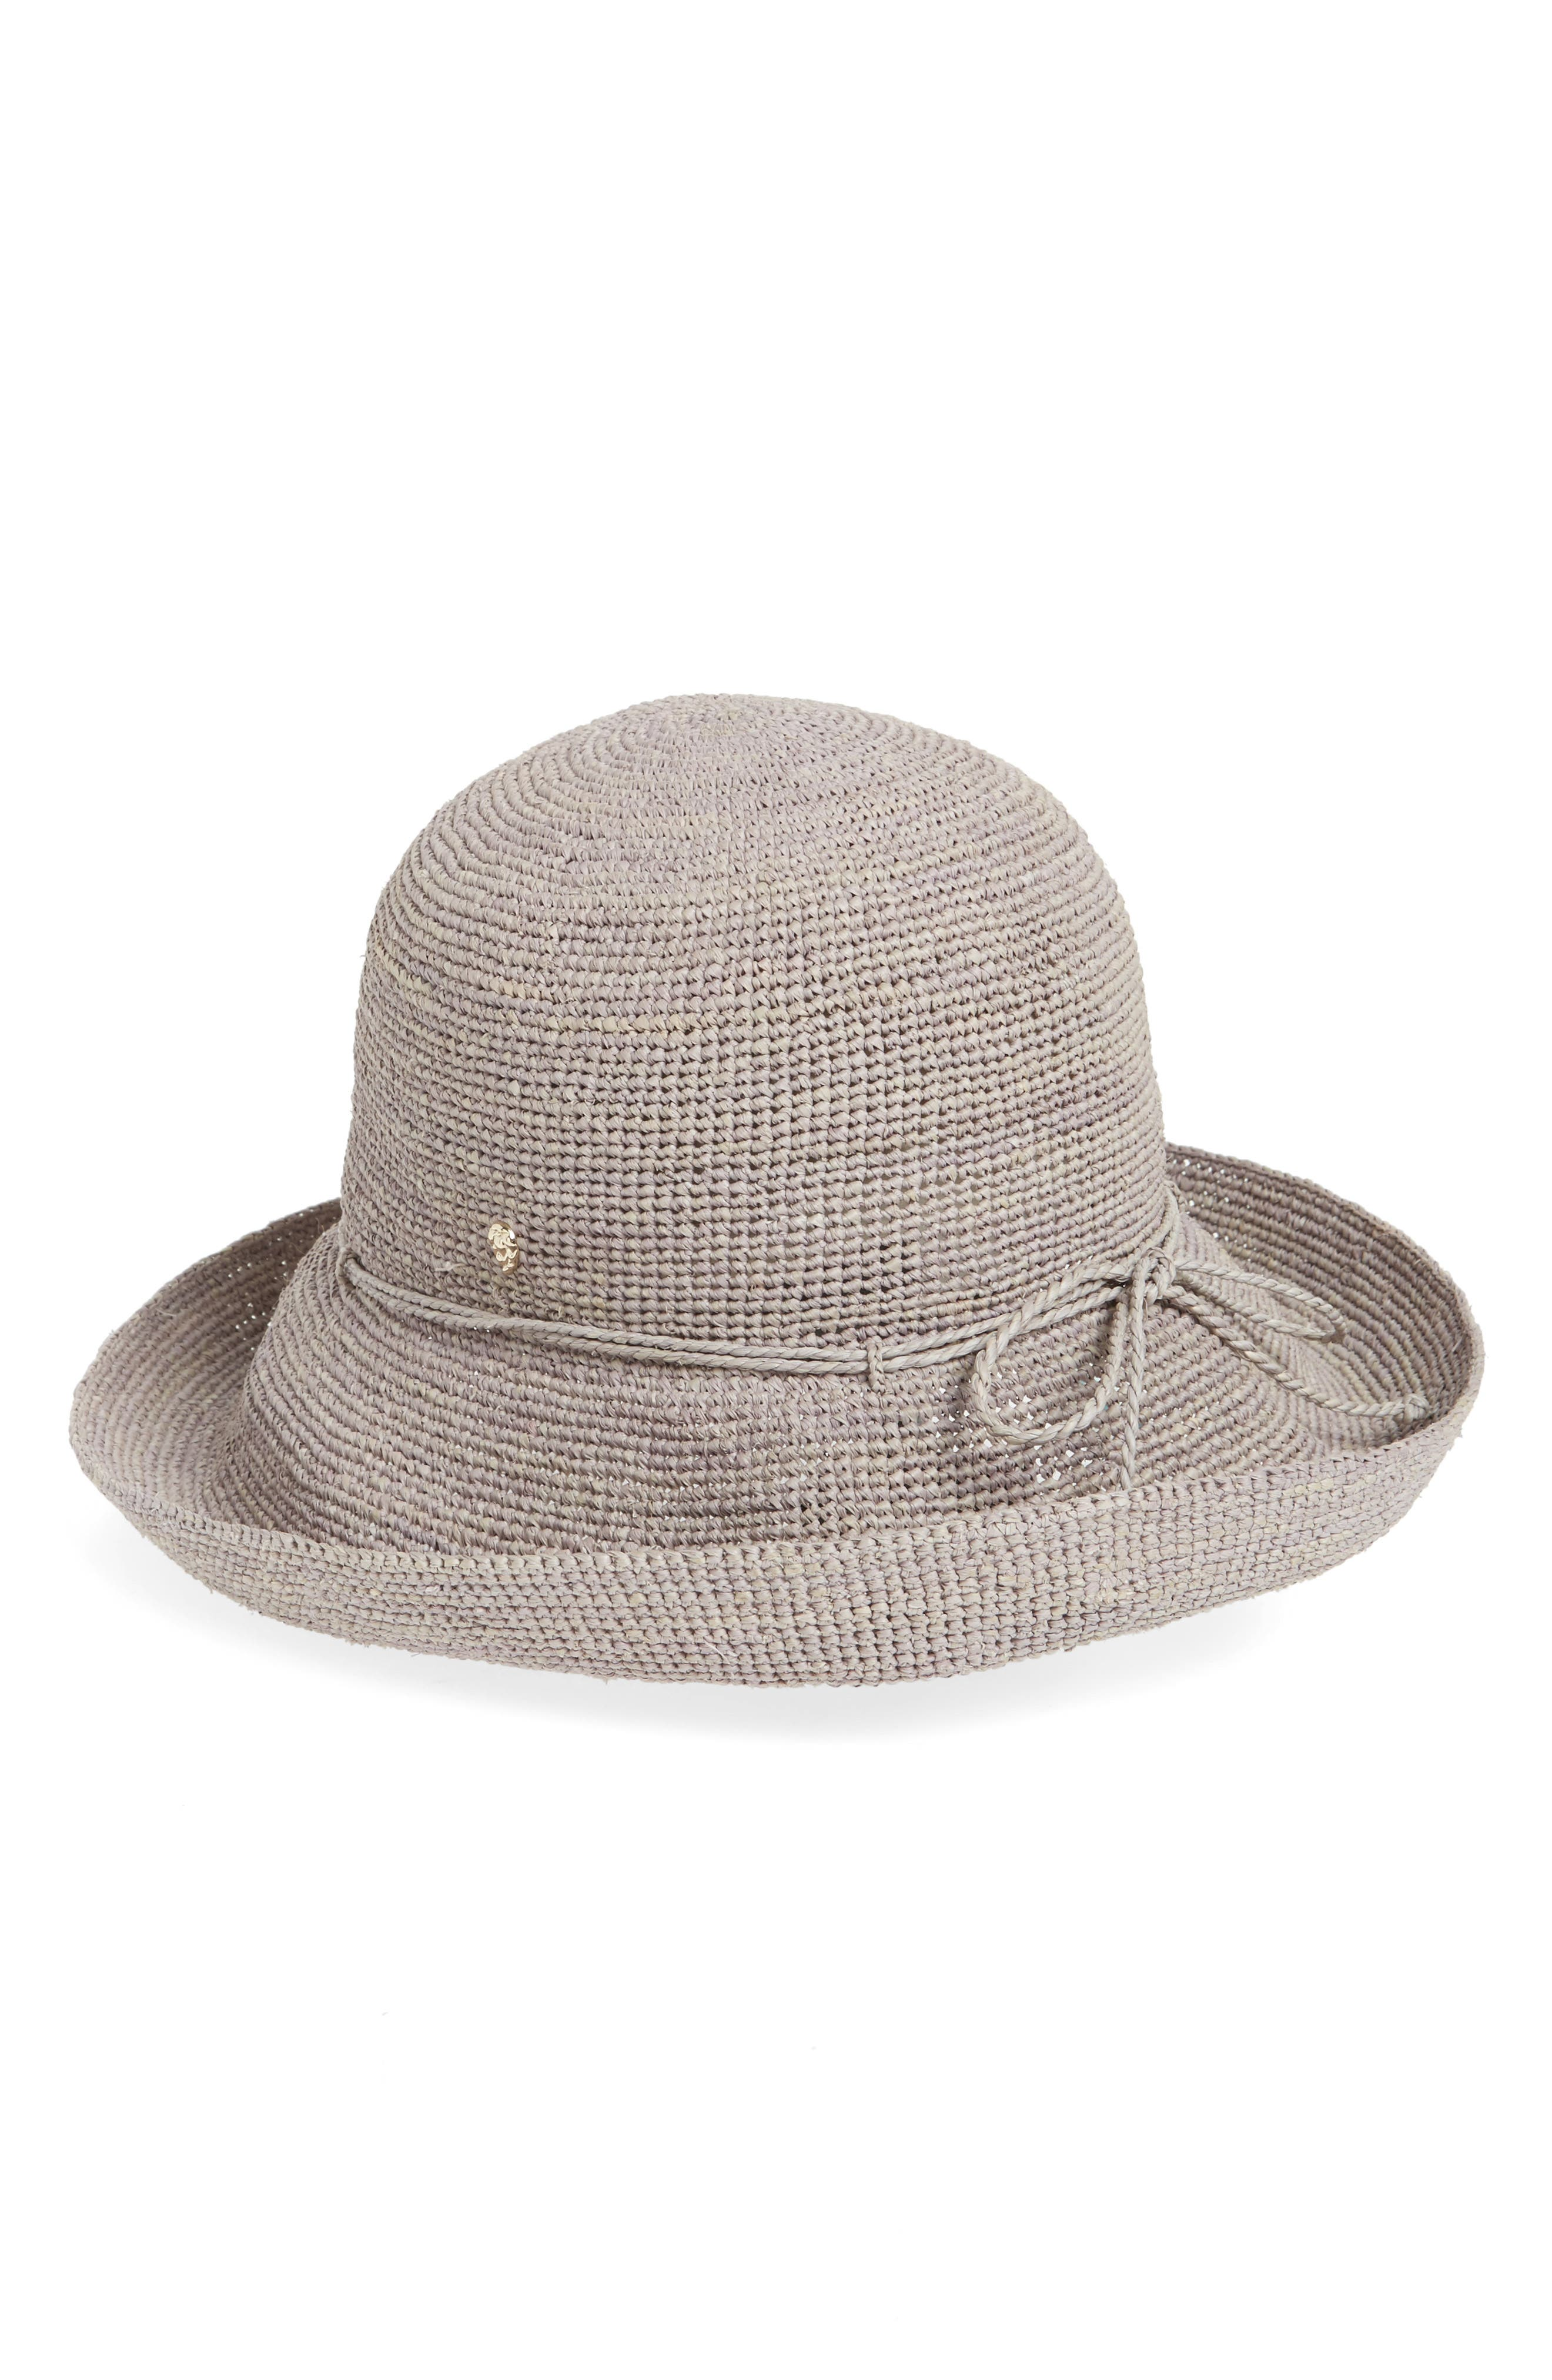 'Provence 10' Packable Raffia Hat,                         Main,                         color, Eclipse Melange